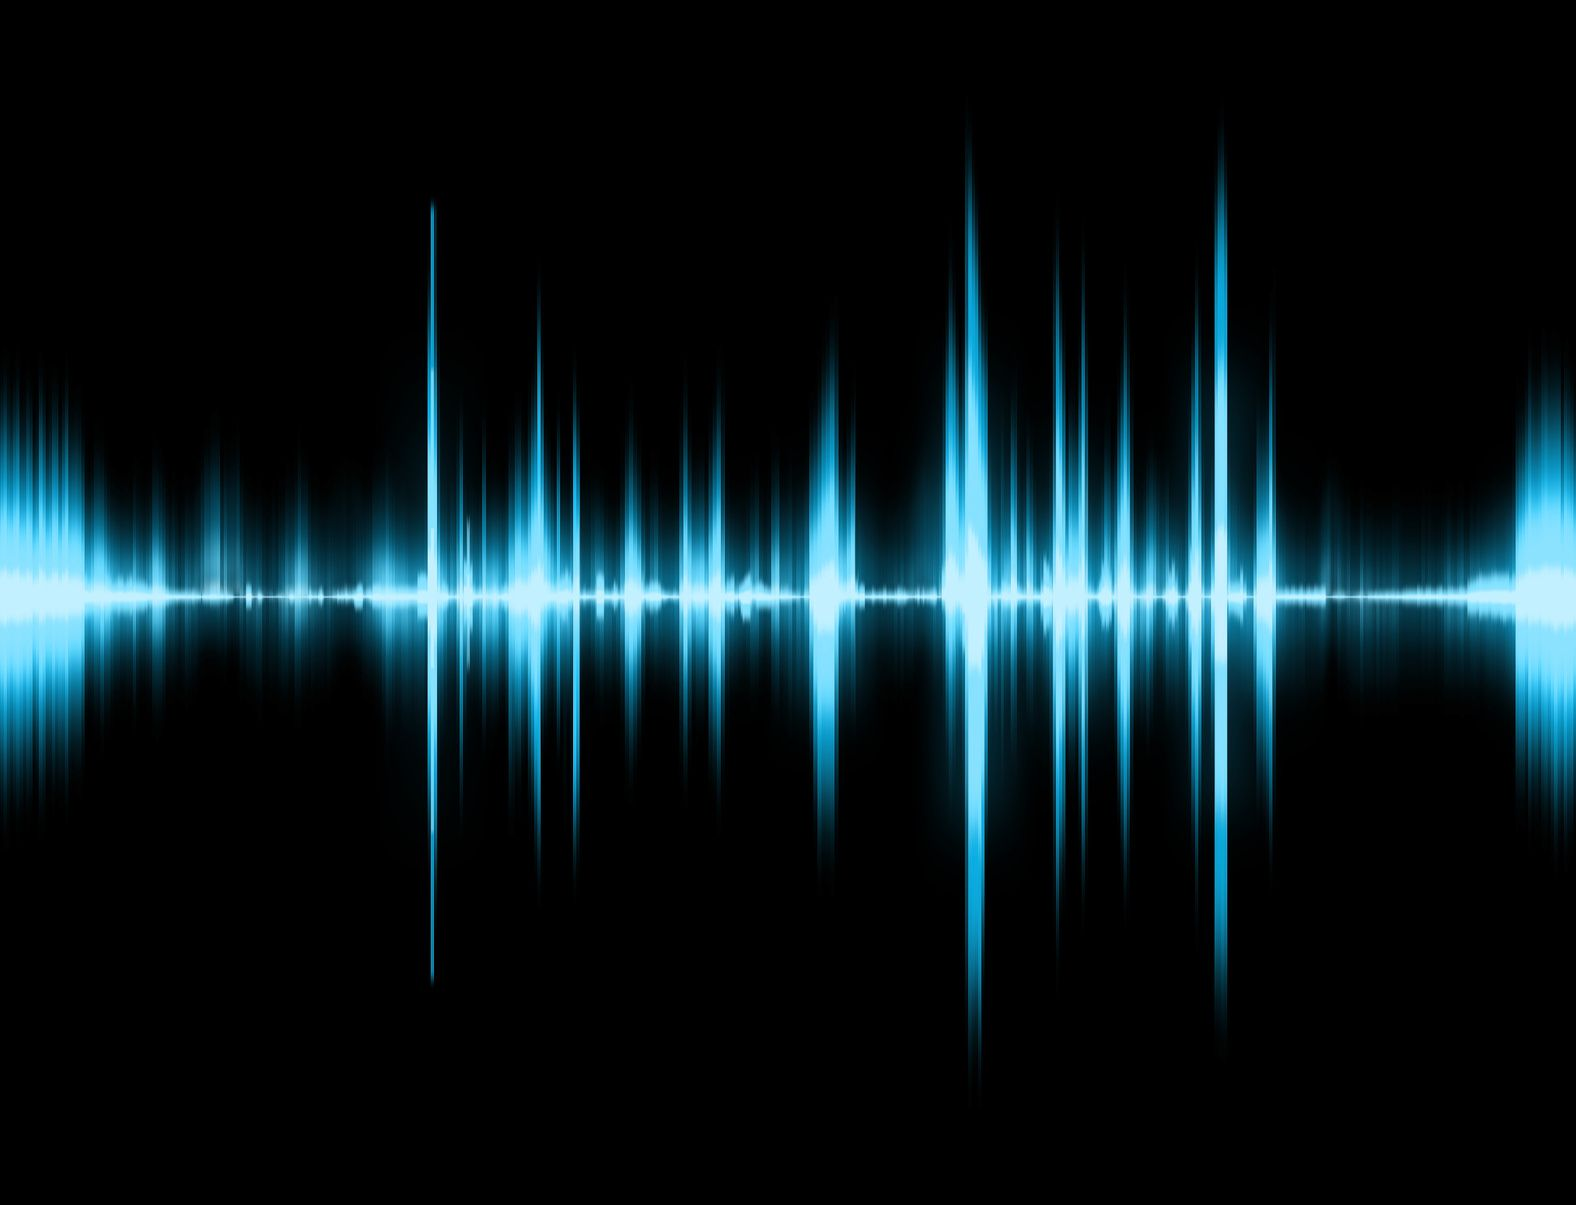 Sound Waves Sound Waves Music Images Music Waves